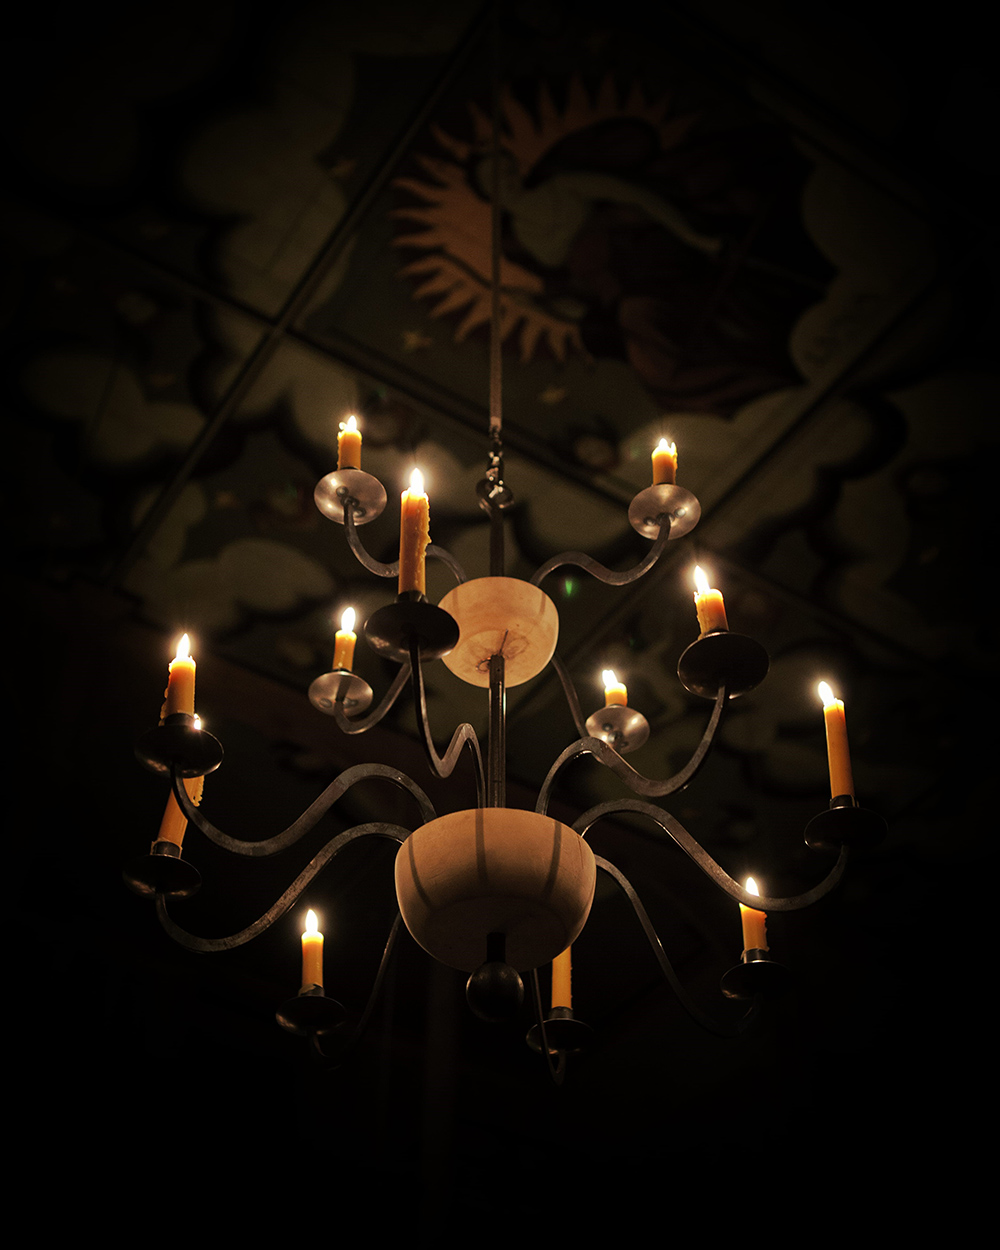 A view looking up at a lit candelabra, the painted ceiling above.